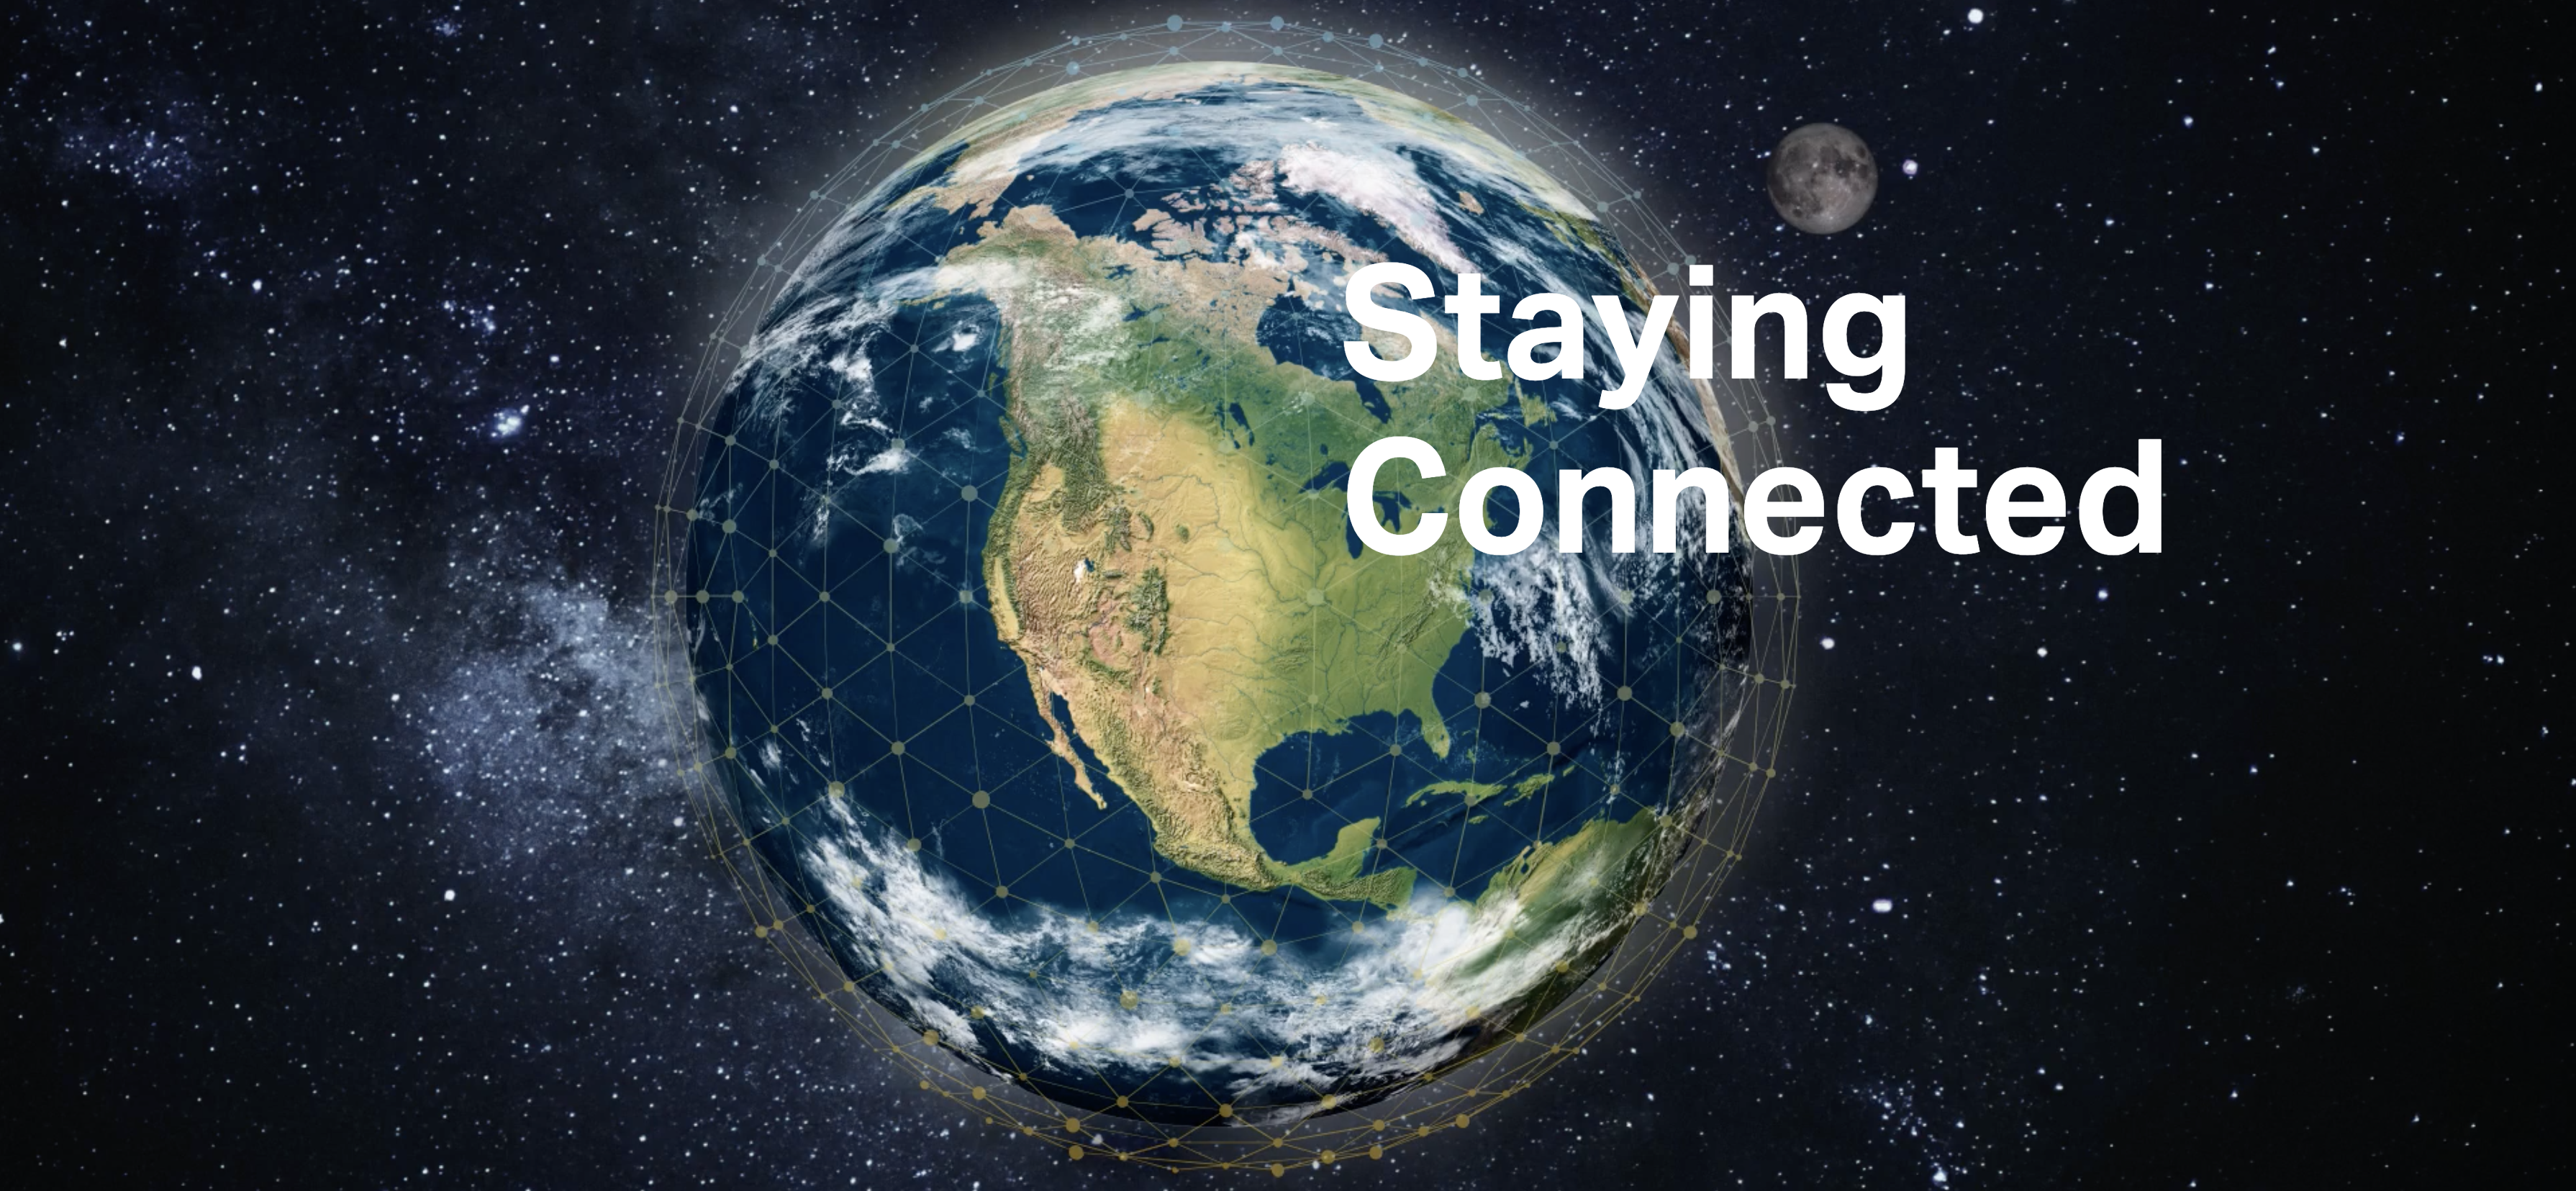 Staying Connected, outer space view of earth with satellite grid surrounding it